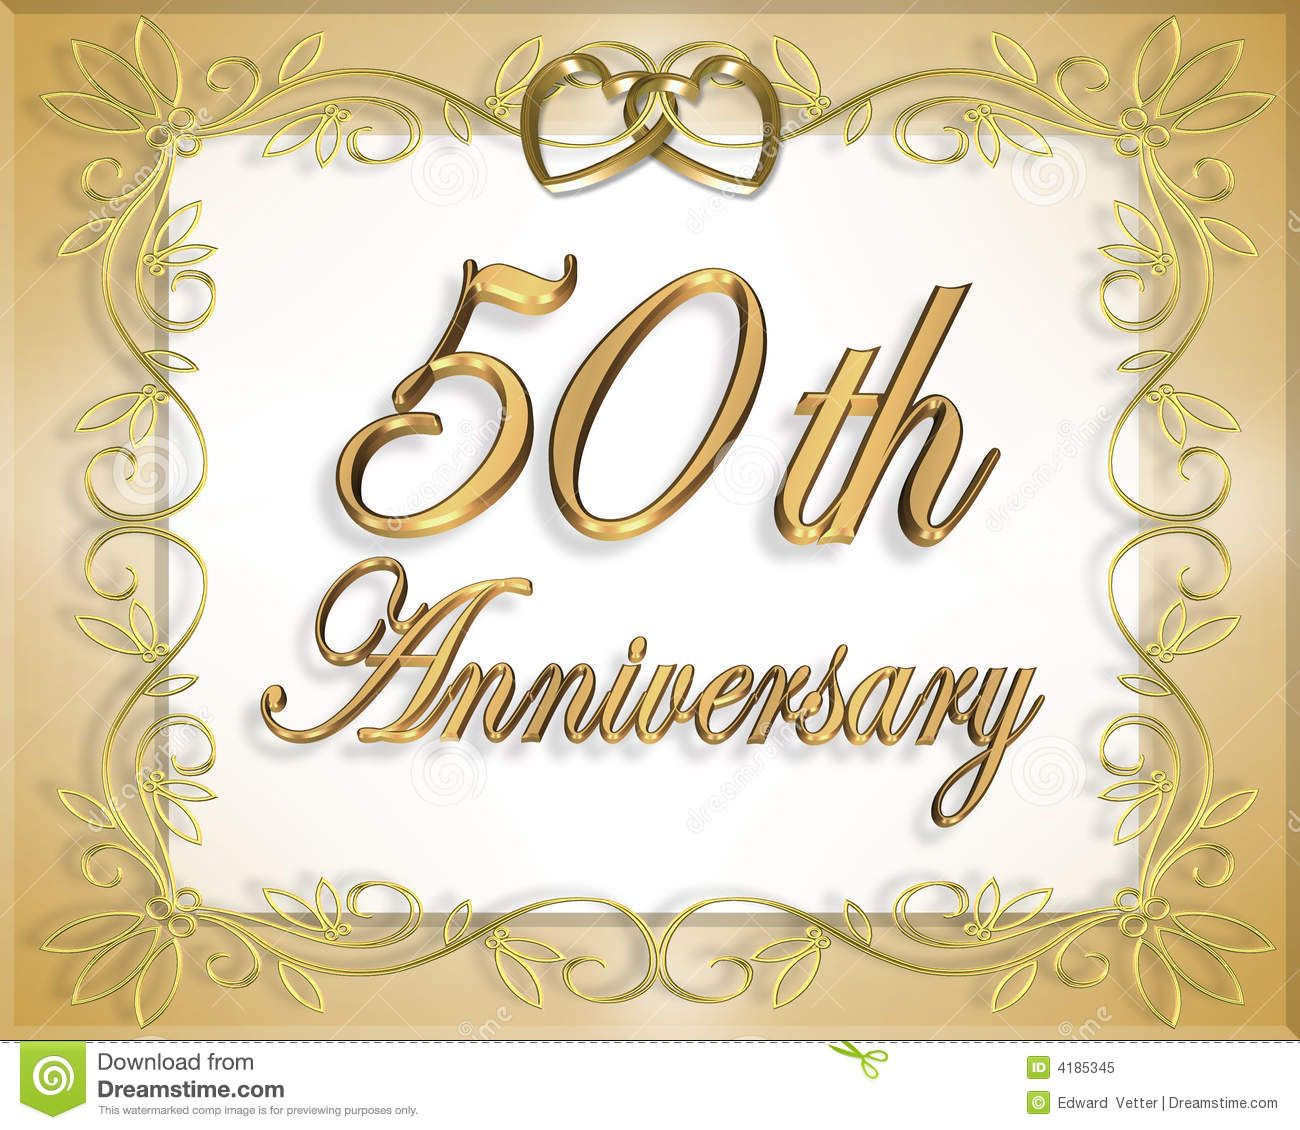 50th Wedding Anniversary Card Royalty Free Stock Image   Image .  Anniversary Card Free